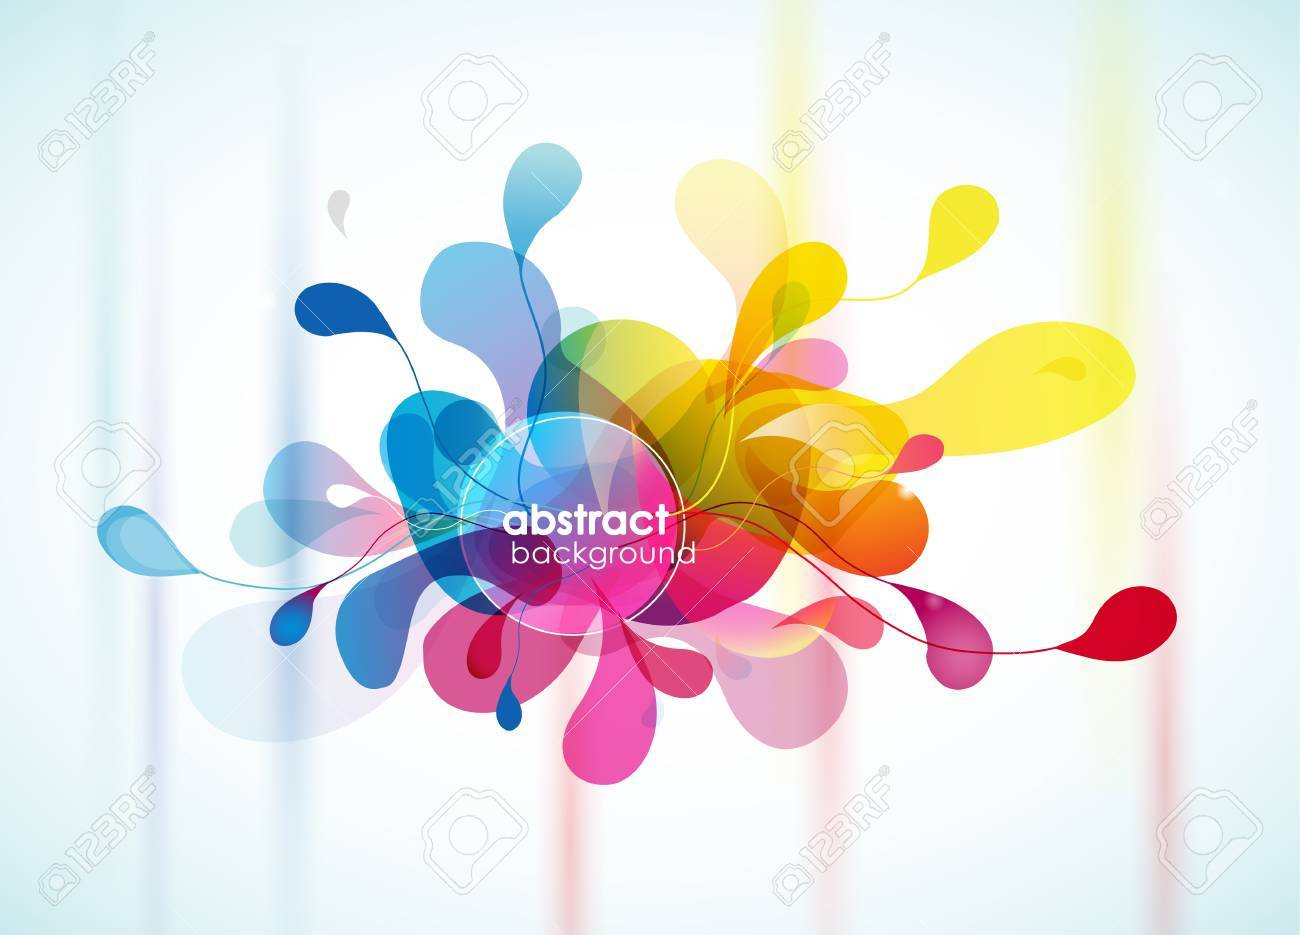 Abstract colorful background reminding flower. - 20216112